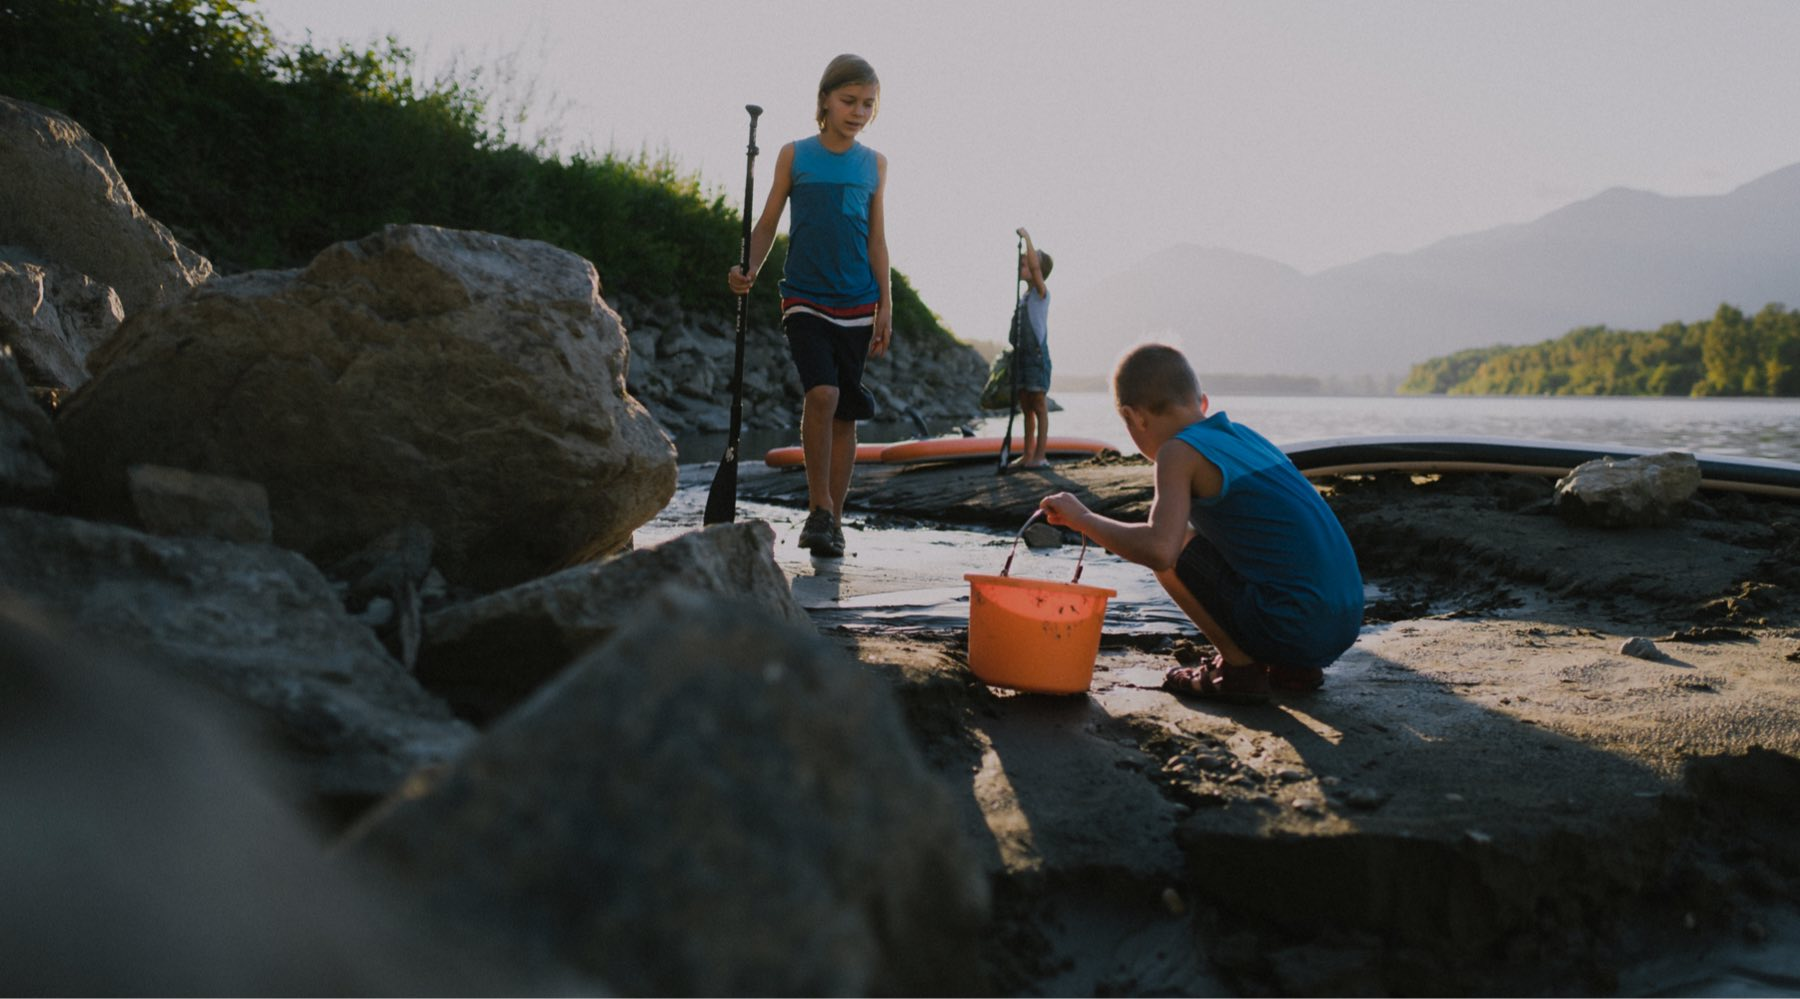 Time to return to Chilliwack BC, Explore the best of what Tourism Chilliwack has to offer.